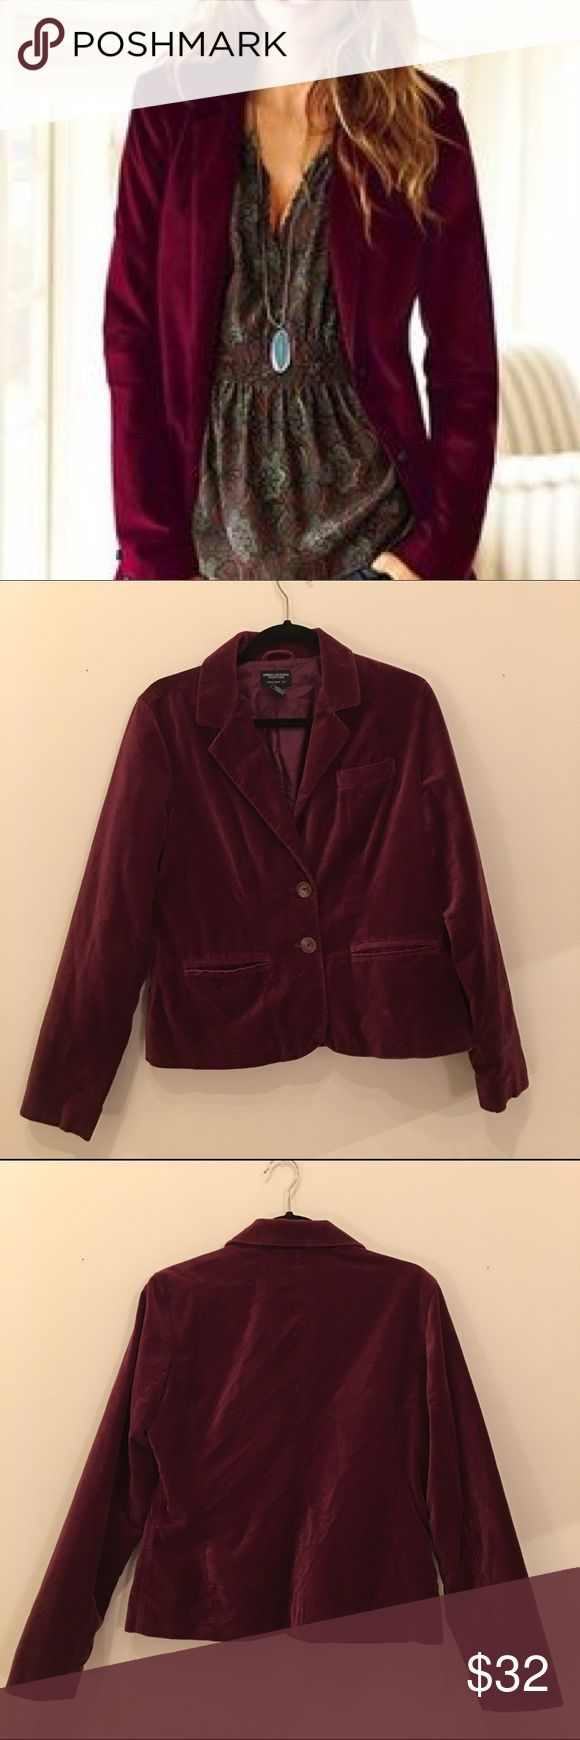 """SOLD American Eagle Velvet Burgundy Blazer measures pit to pit 20""""/ length 24"""" American Eagle Outfitters Jackets & Coats Blazers"""